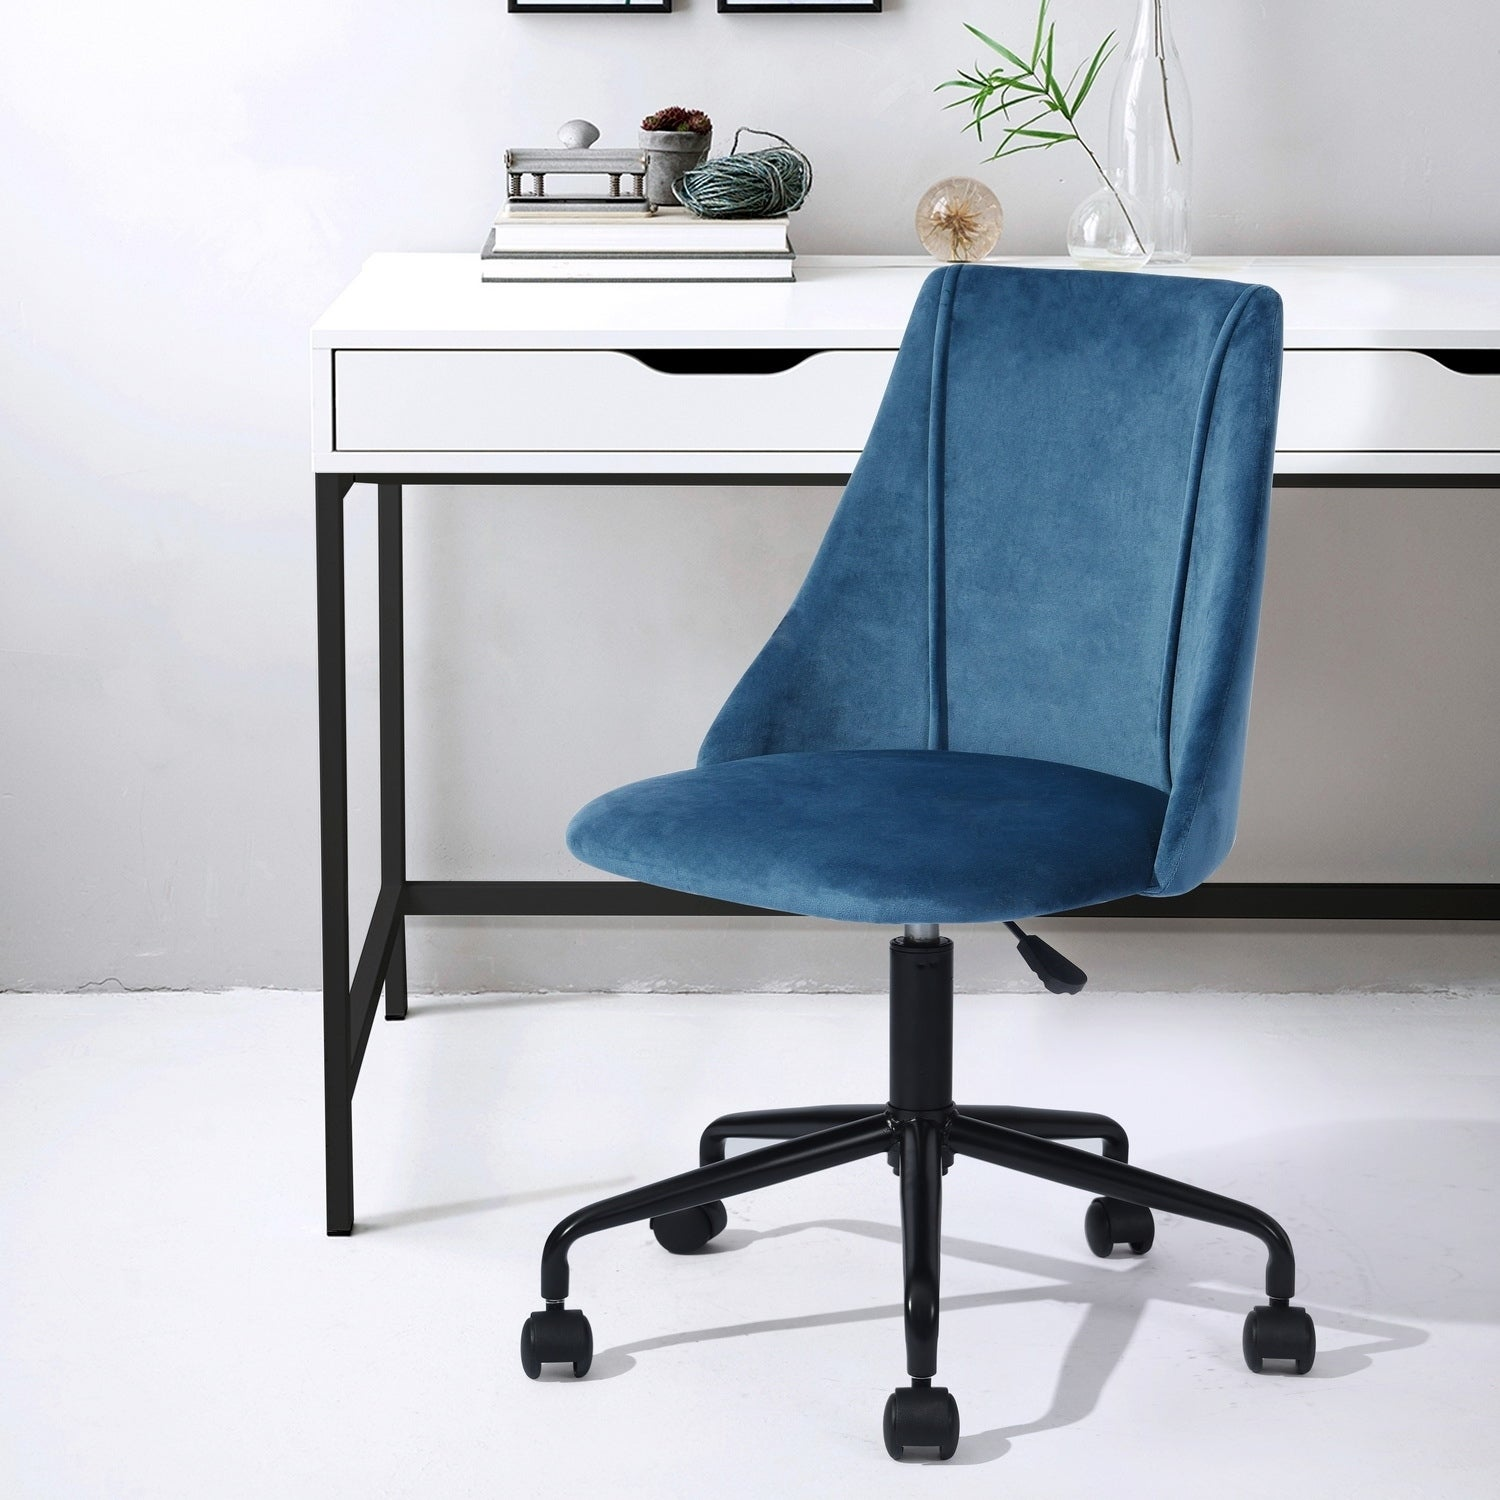 Wondrous Desk Chairs Shop Online At Overstock Unemploymentrelief Wooden Chair Designs For Living Room Unemploymentrelieforg